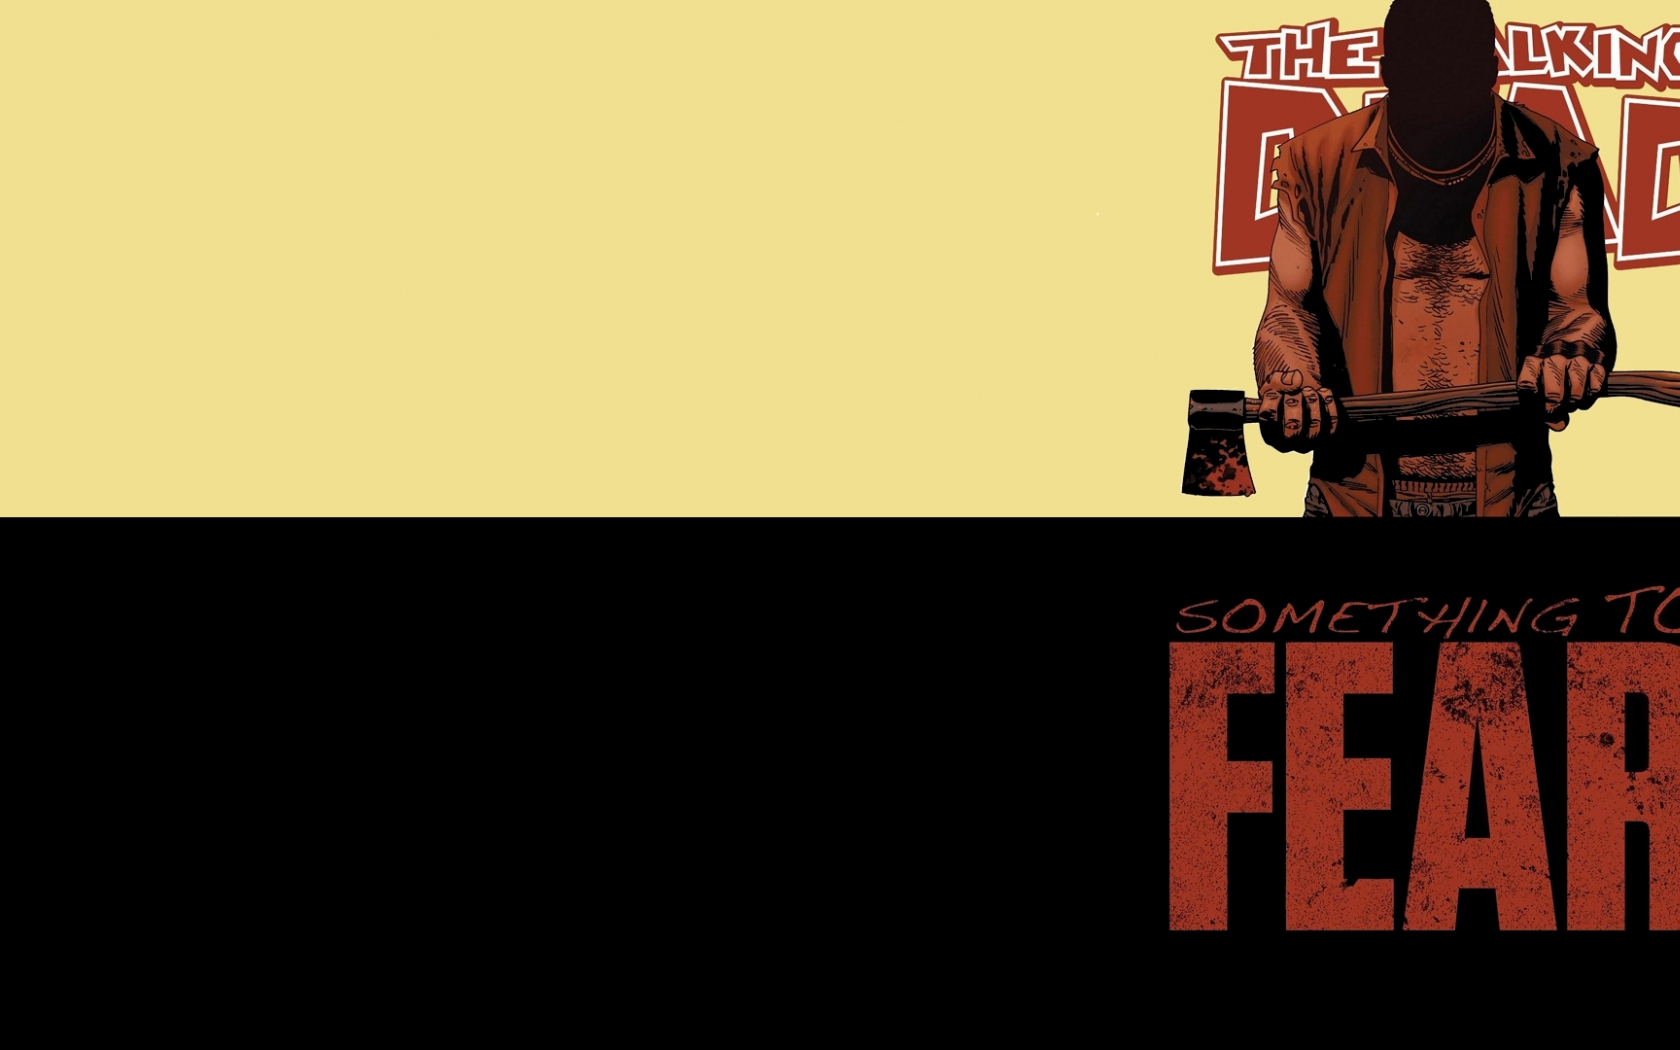 Free Download Dont Fear The Walking Dead Wallpaper 1920x1080